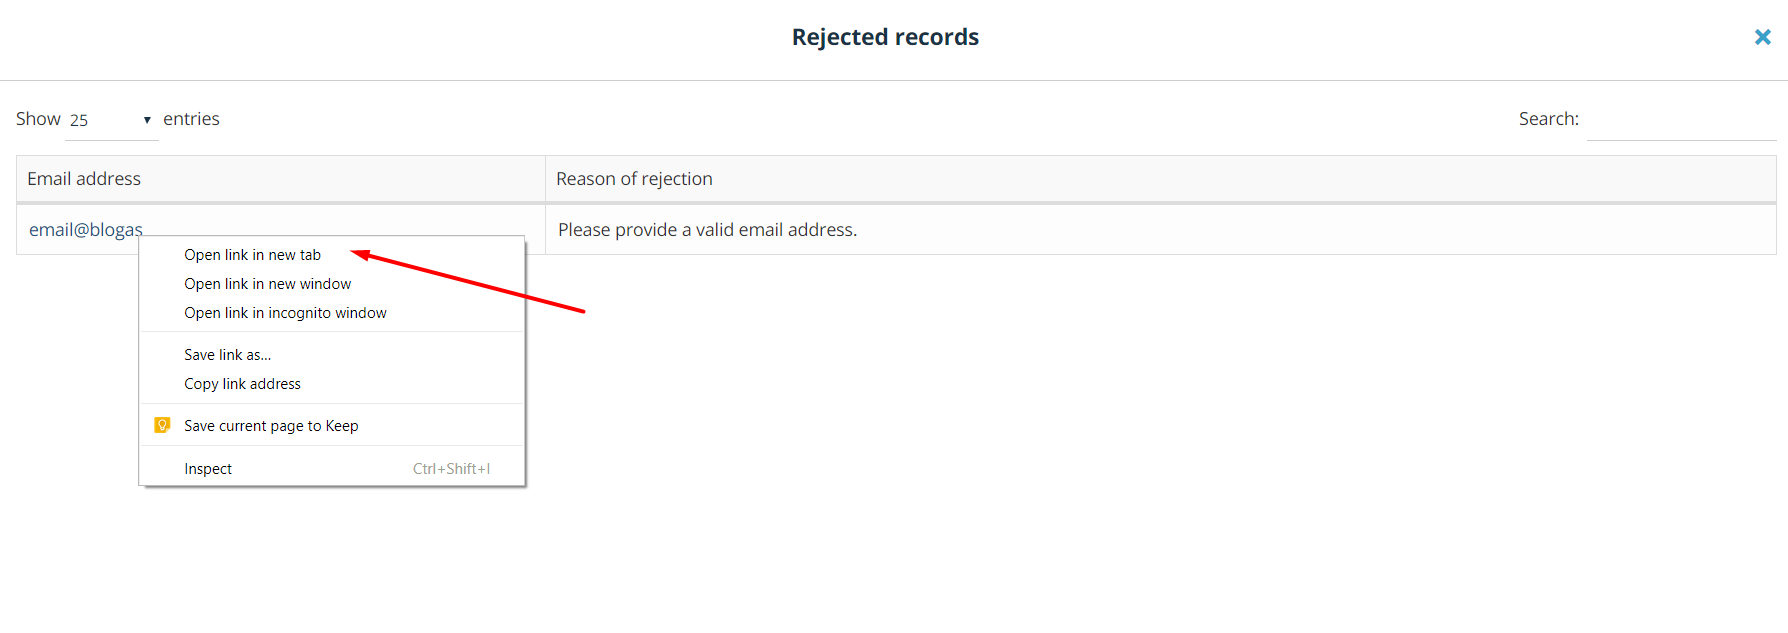 rejected-records-mailchimp-teamgate-integration.png